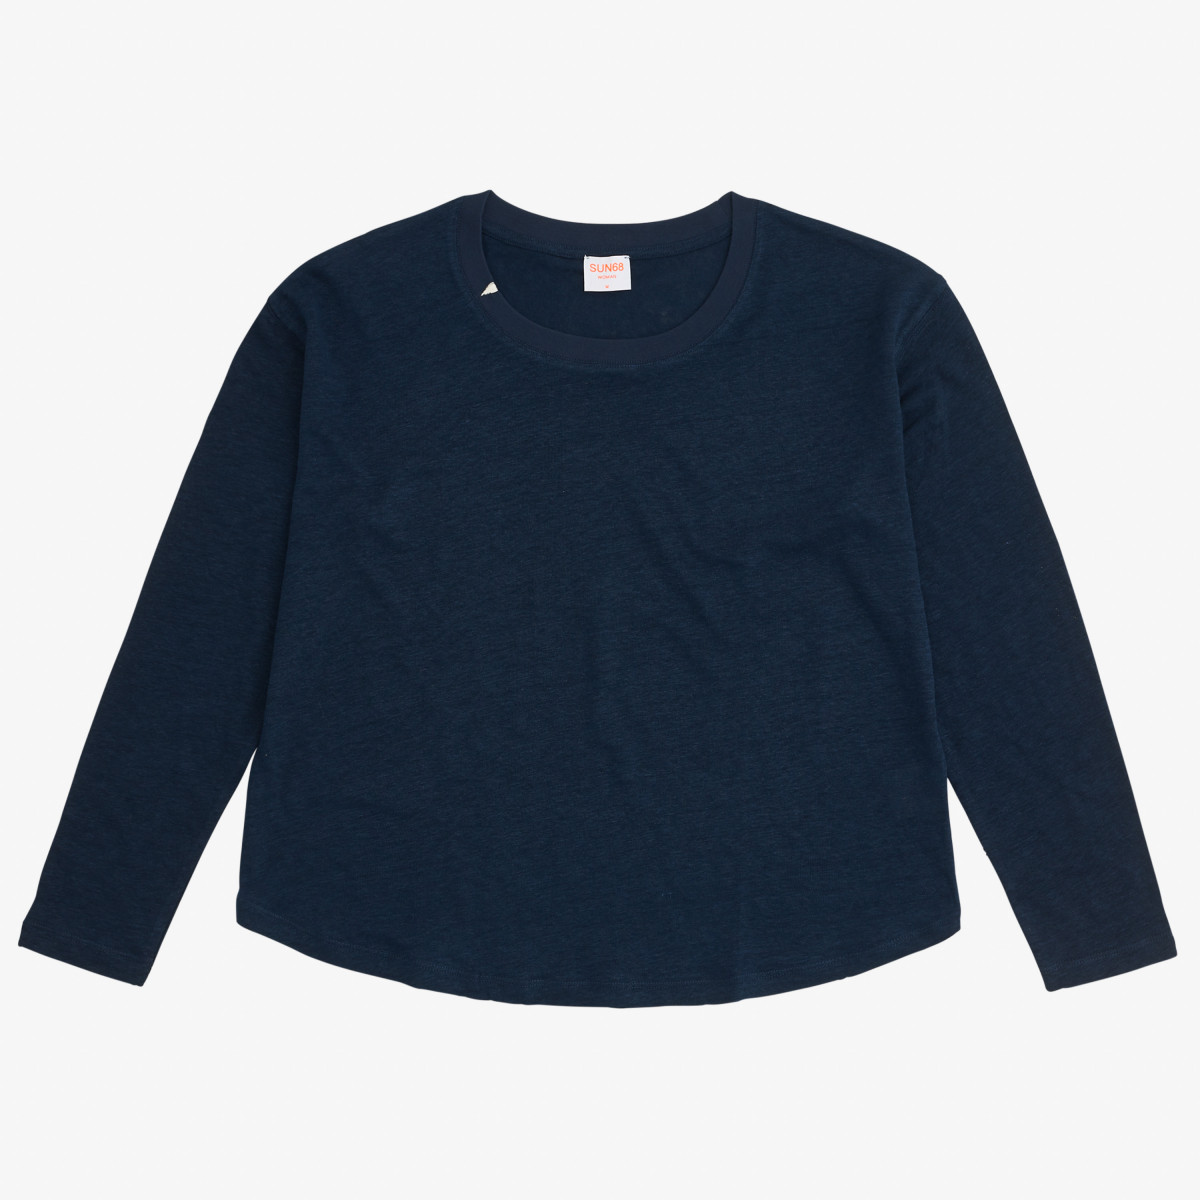 T-SHIRT LINEN L/S NAVY BLUE